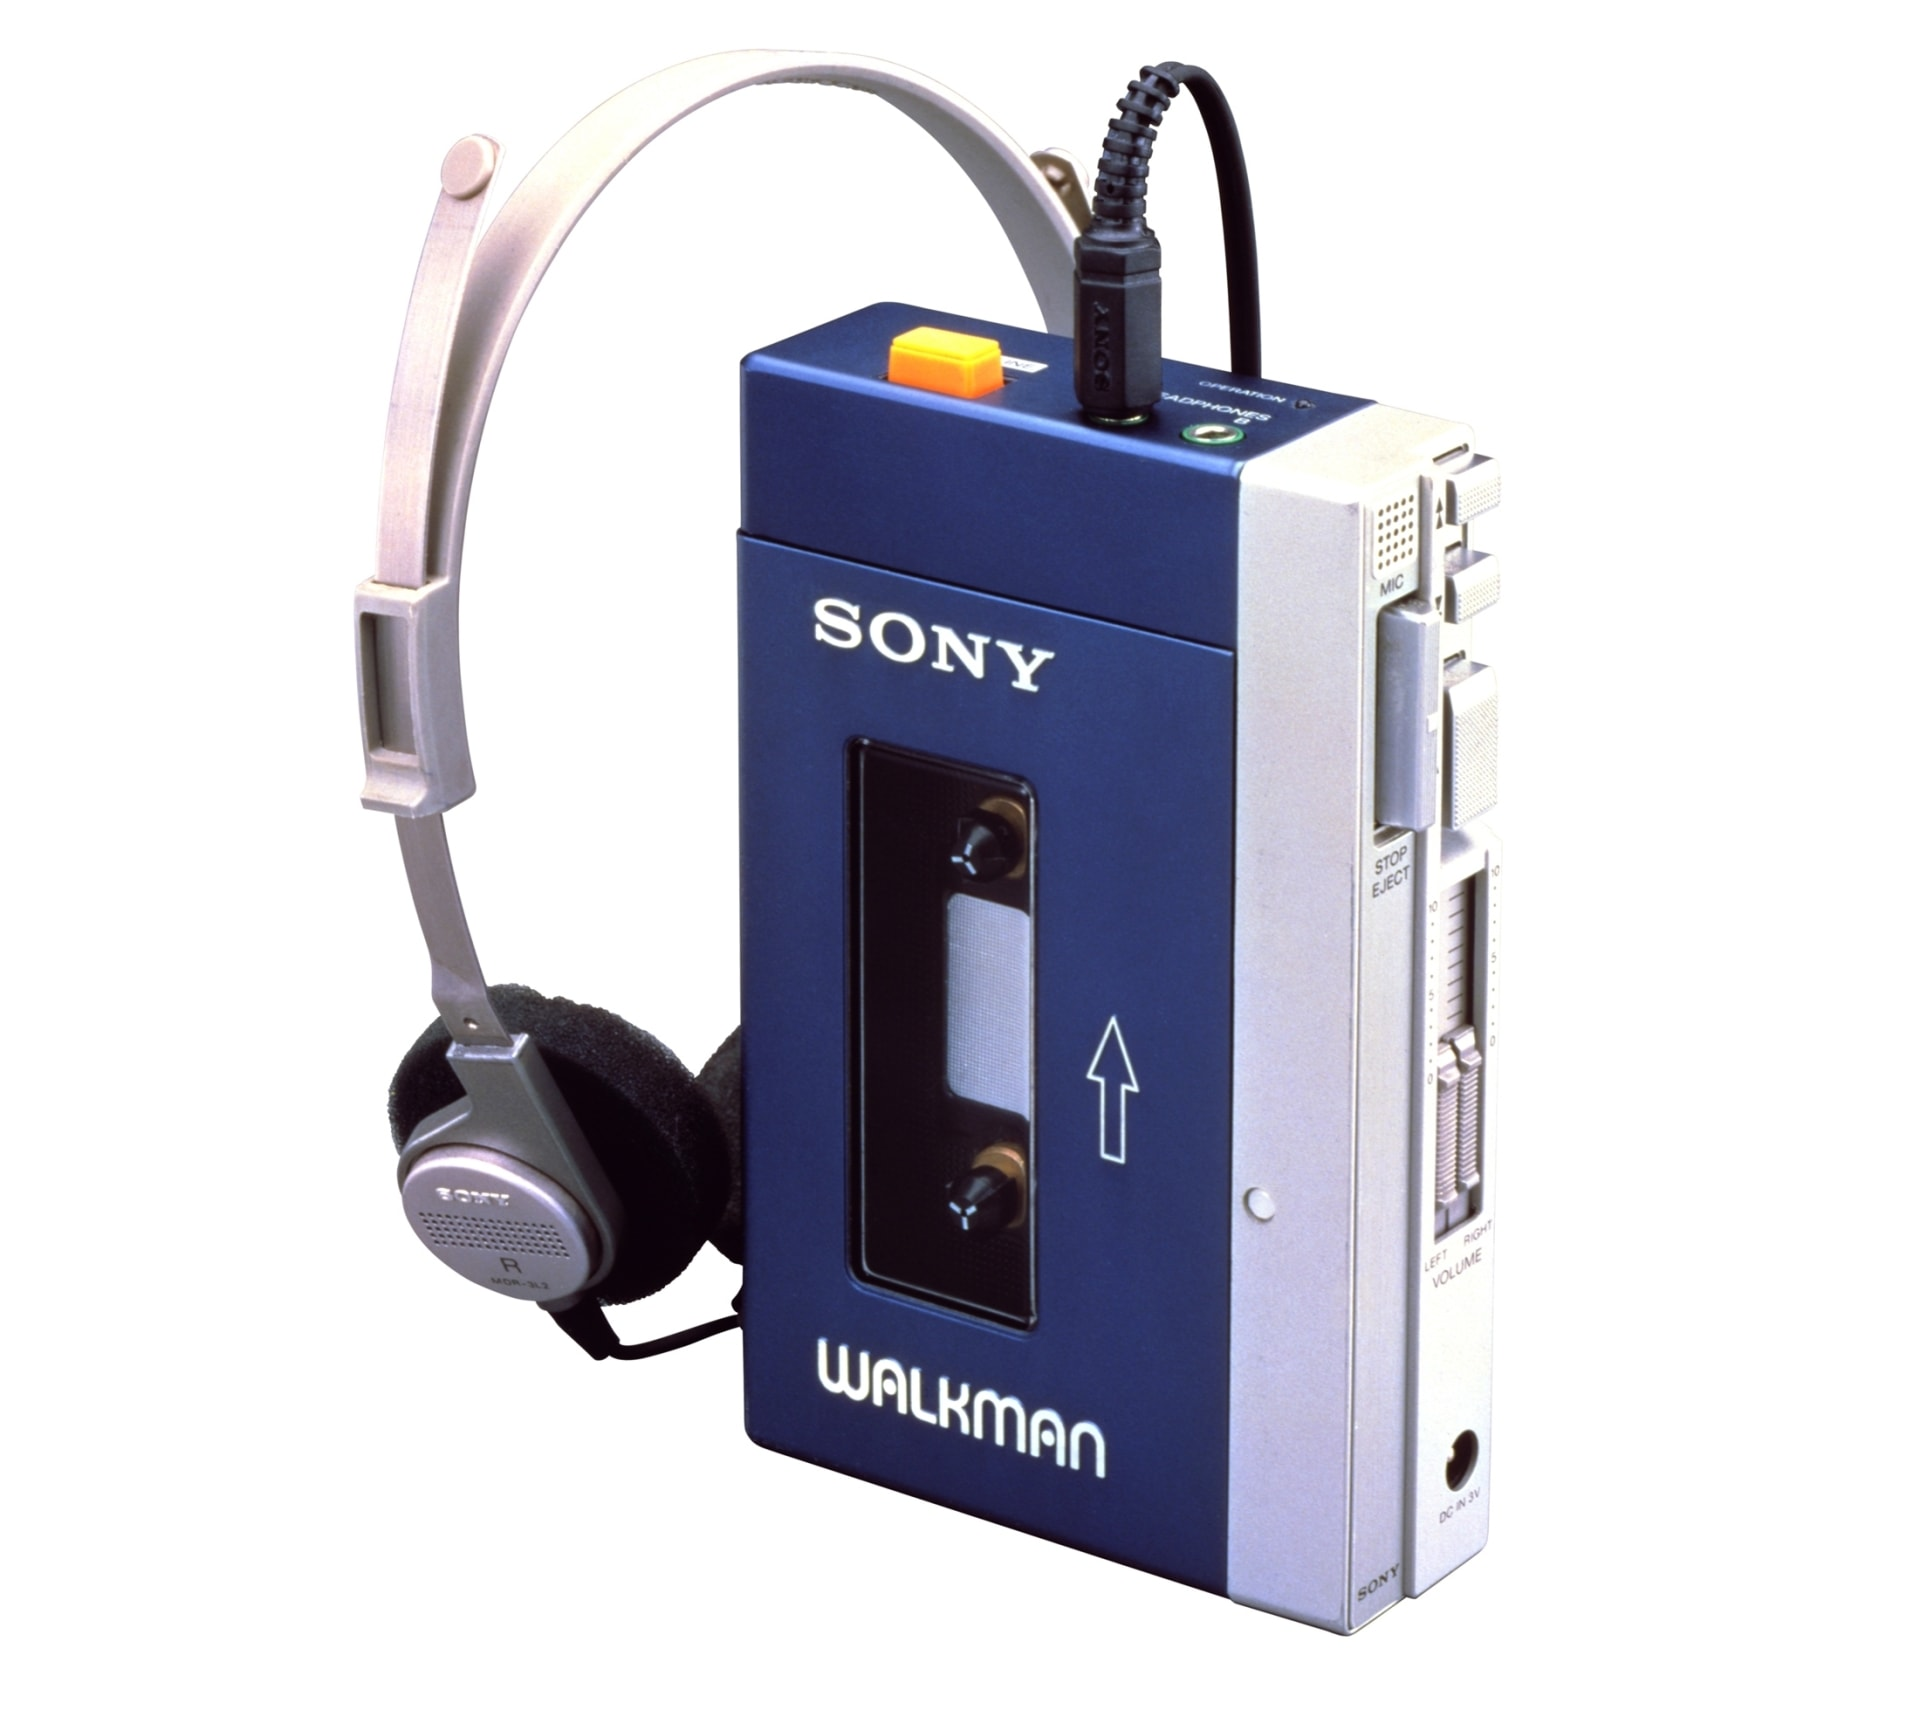 The Sony Walkman is now 40 years old